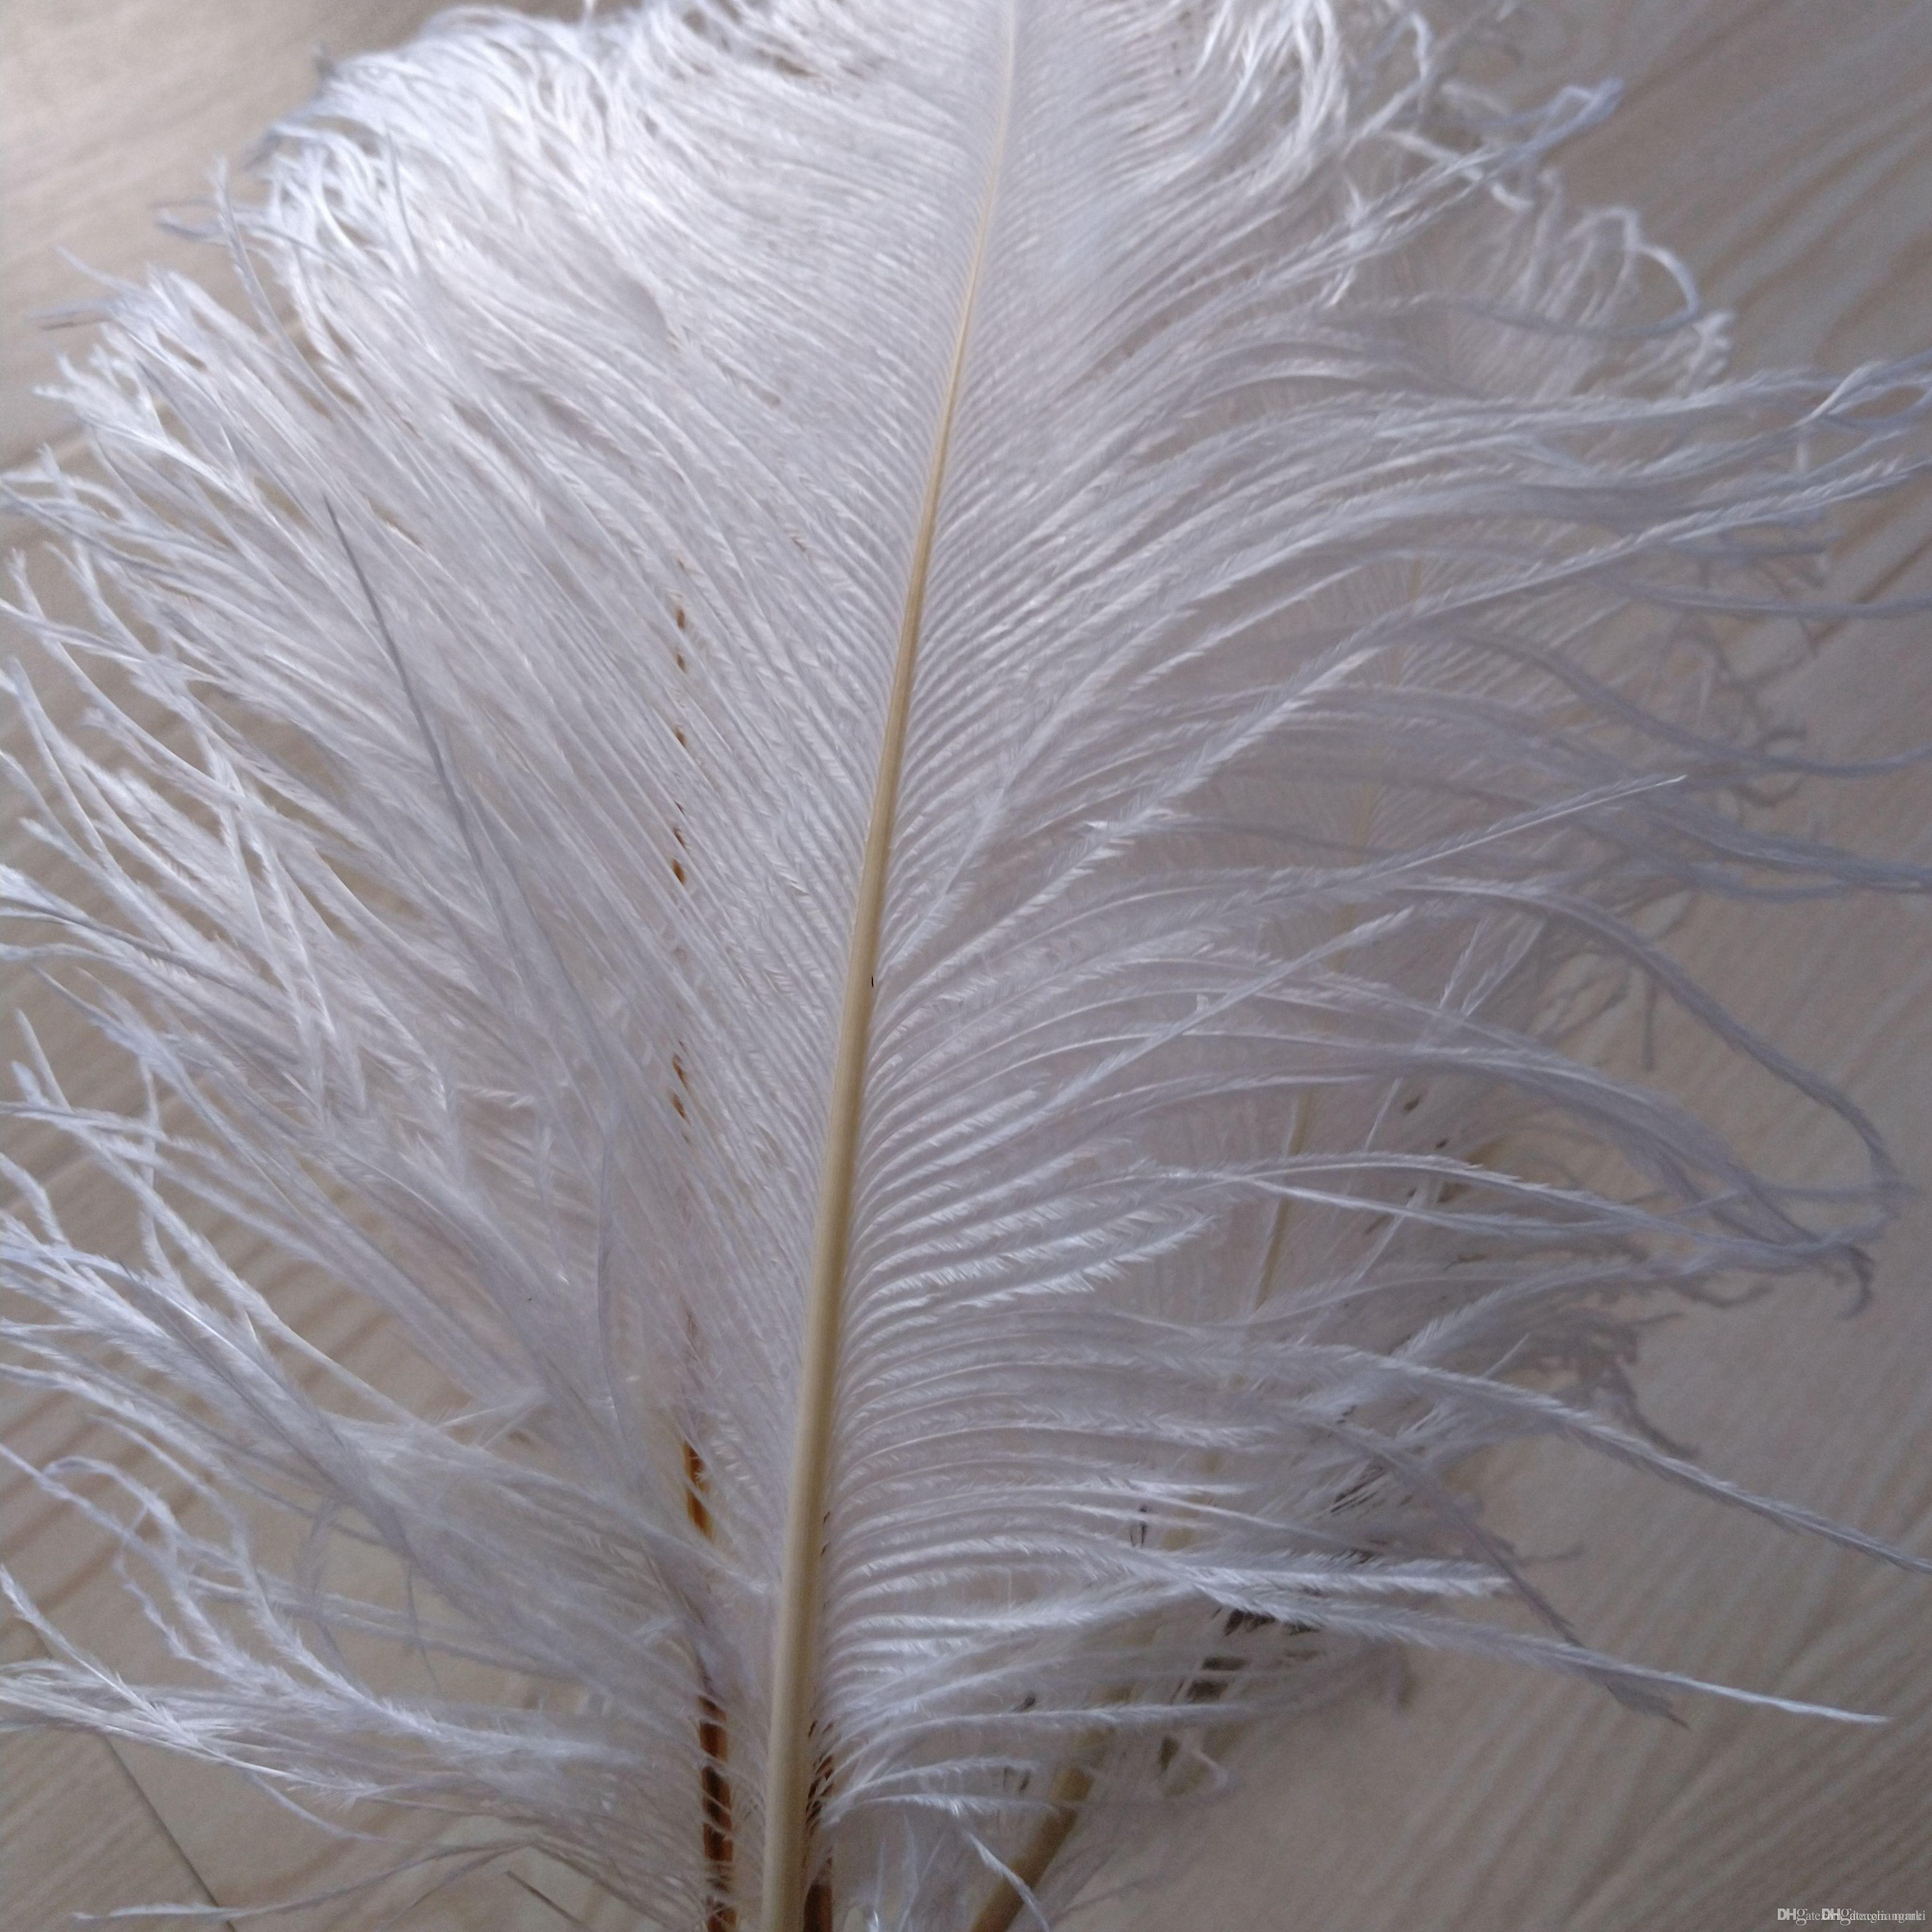 Marki whole 2020 sale 200pcs/lot 8-9inch White Ostrich Feather Plume,Wedding Feather Centerpieces Home decoraction party event supply z134